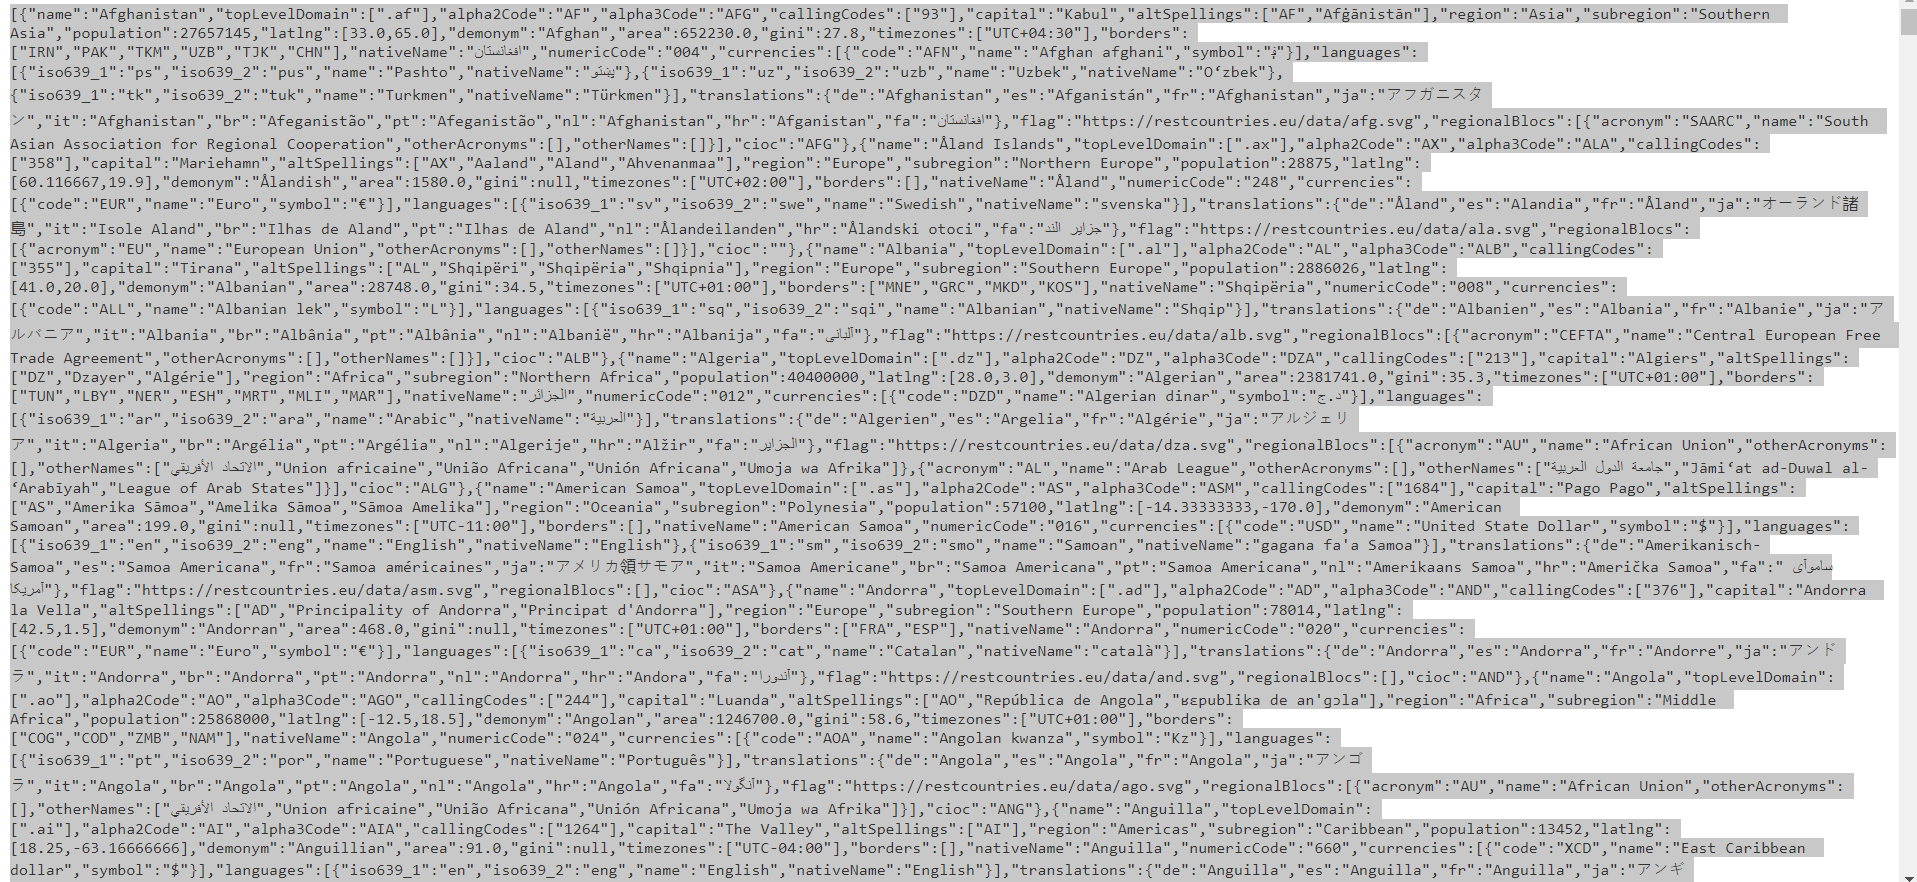 The Json Payload sample.